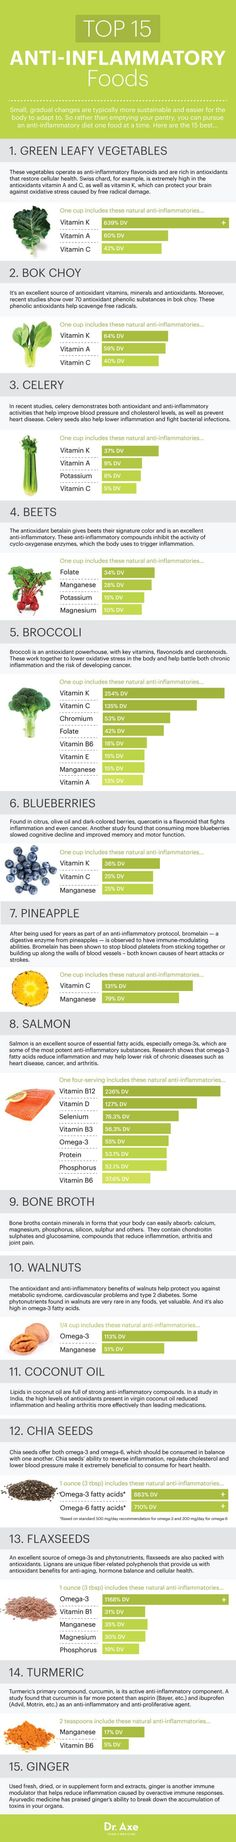 15 Anti-Inflammatory foods that can transform your health infographic